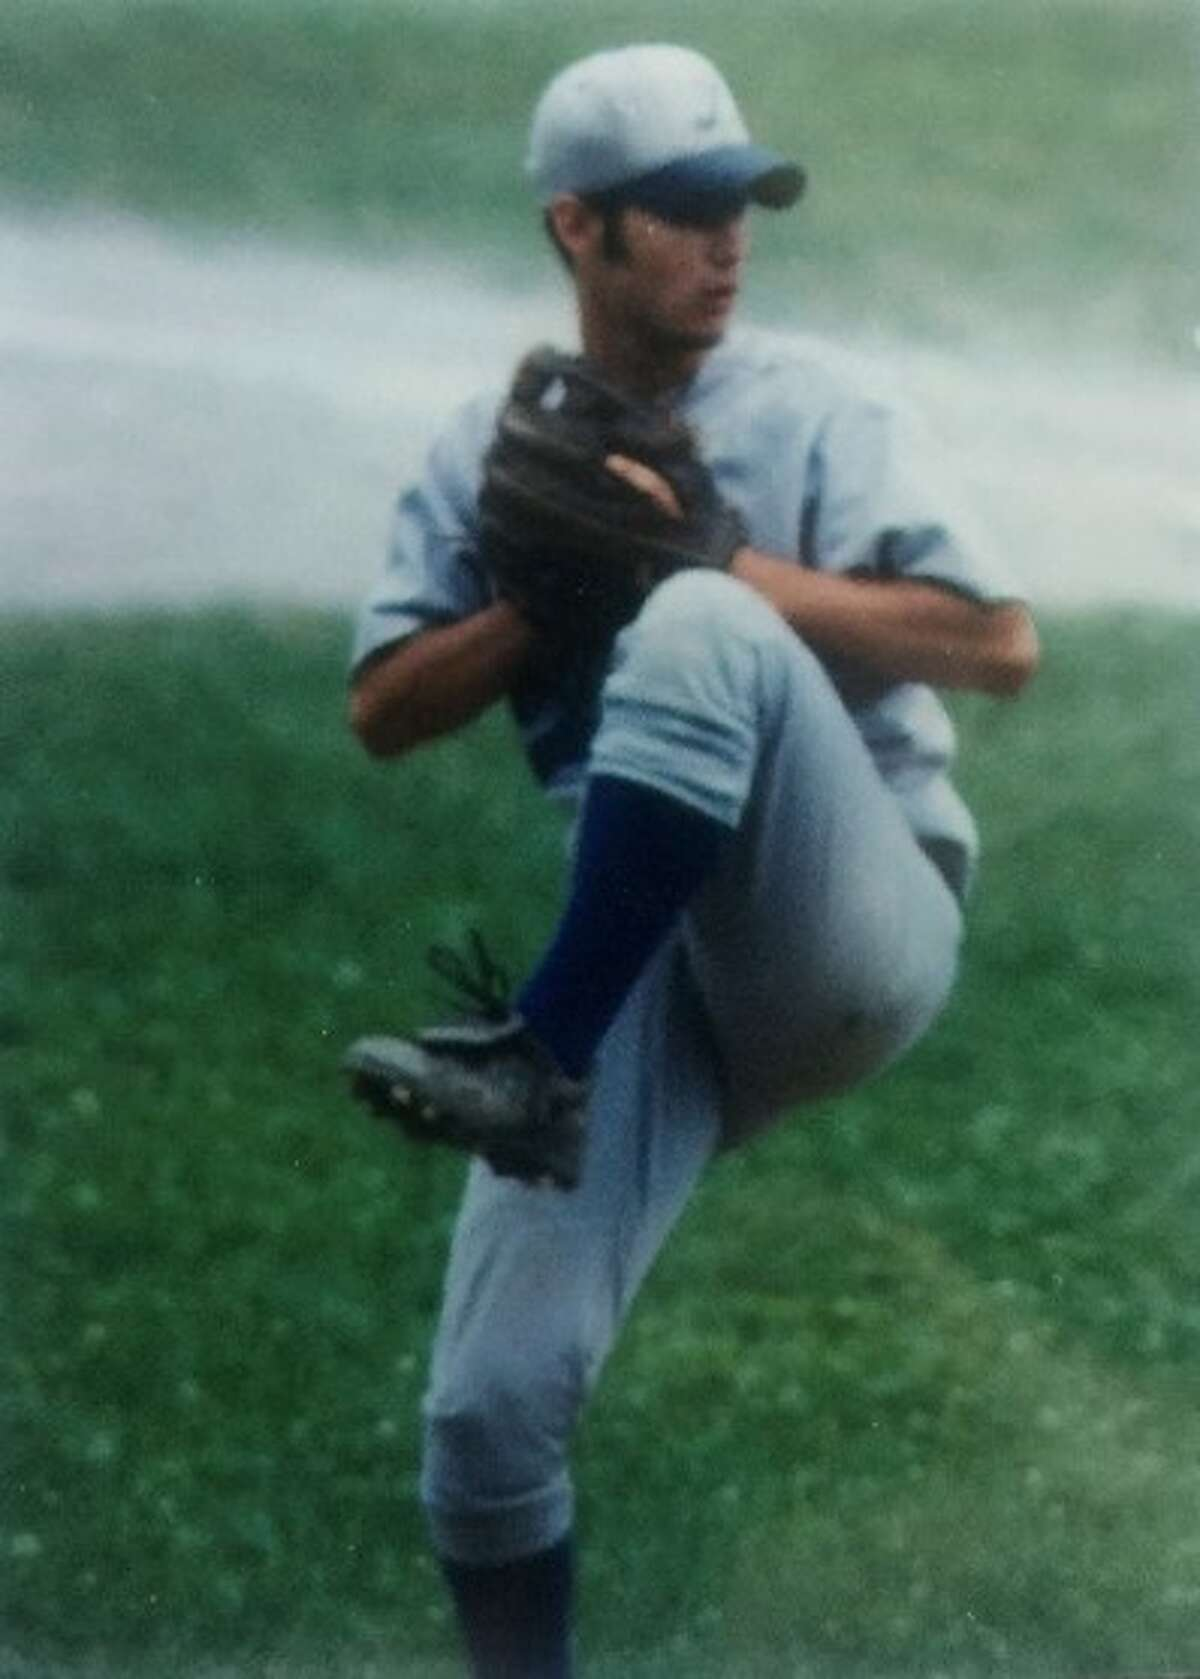 3. I played baseball and was a pitcher.